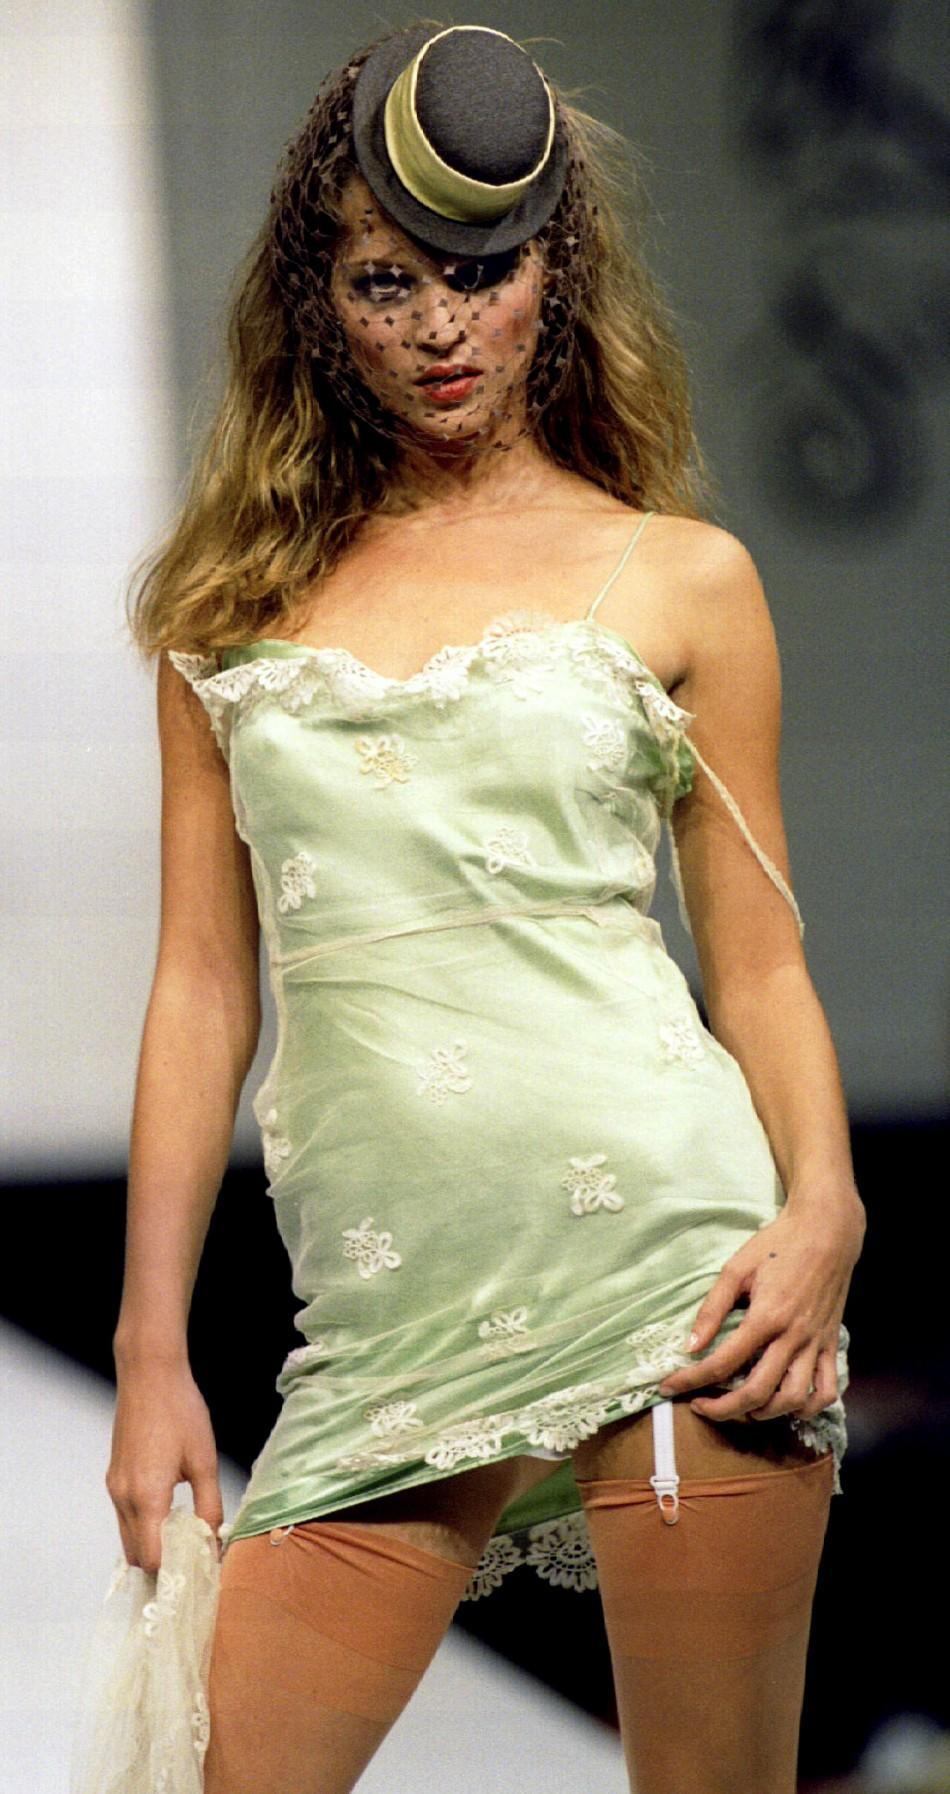 Kate Moss Turns 38: A Look Back at Moss's Iconic Fashion Moments